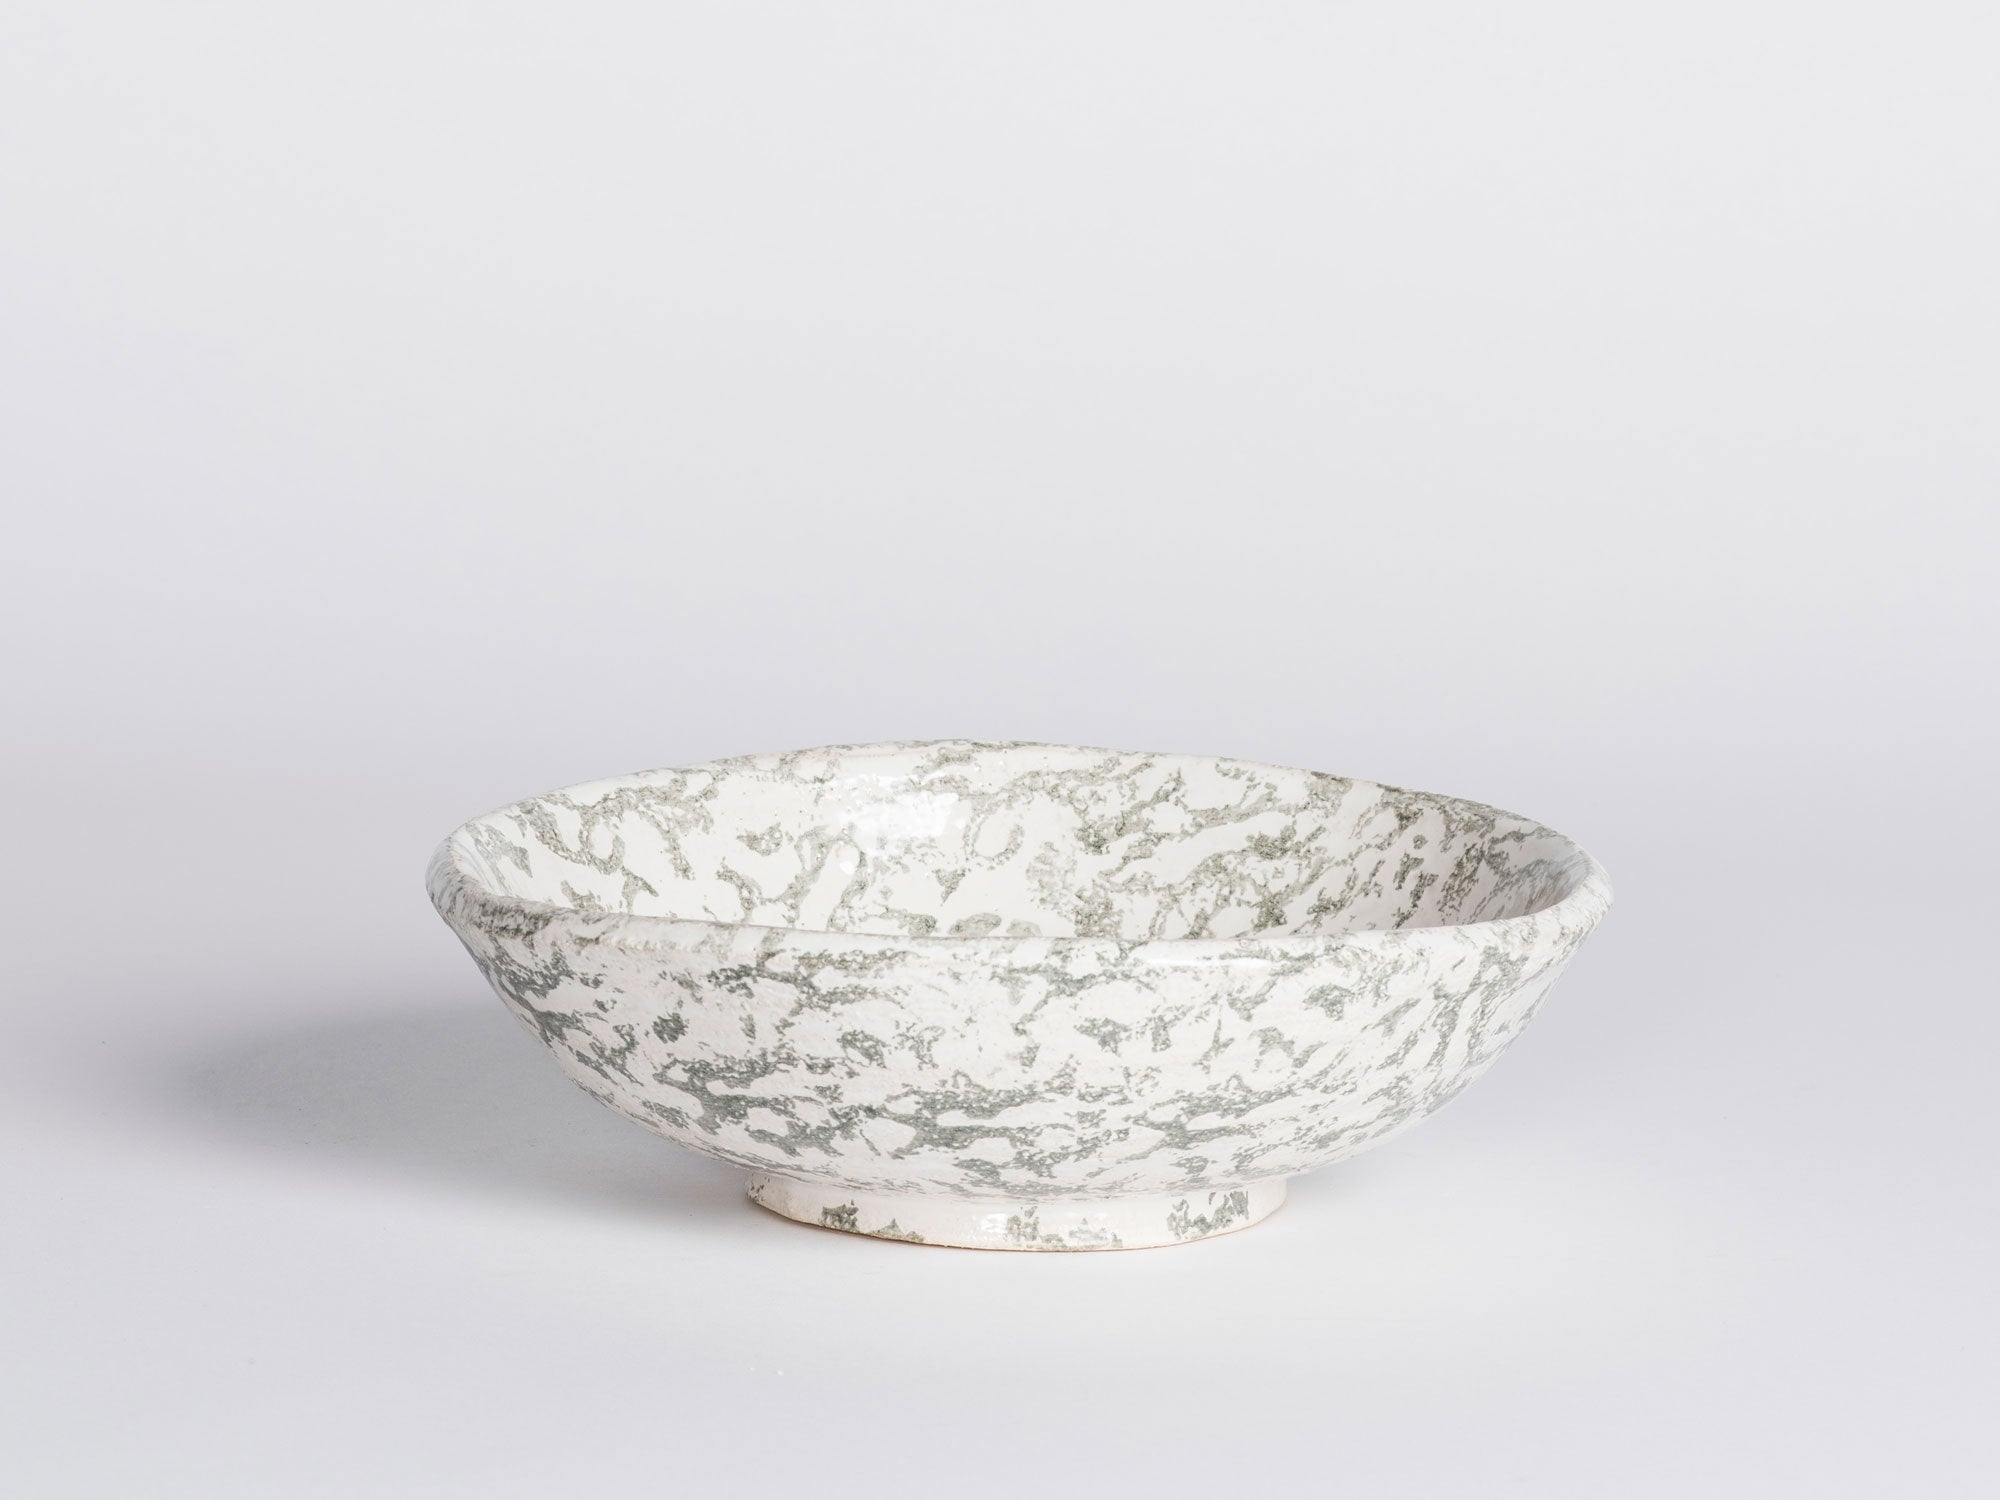 Morgan Peck Bowl - Green Spongeware